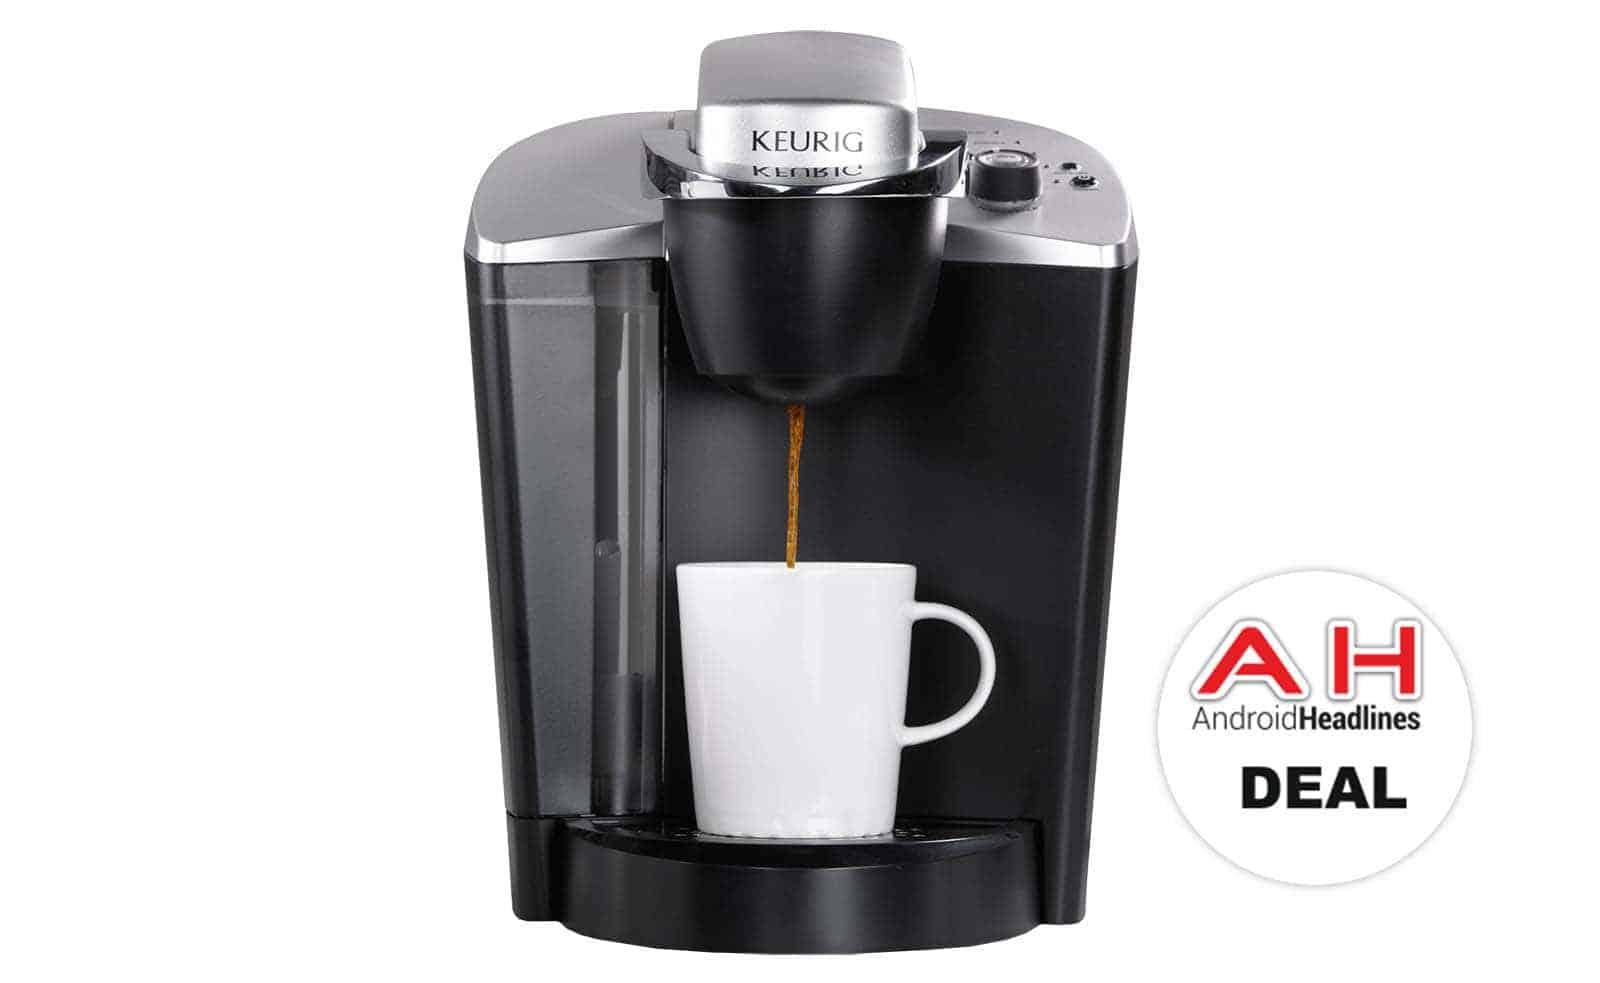 Cuisinart Coffee Maker Wonot Drip Water : Keurig Won T Turn On normal distribution template 10 steps of accounting cycle